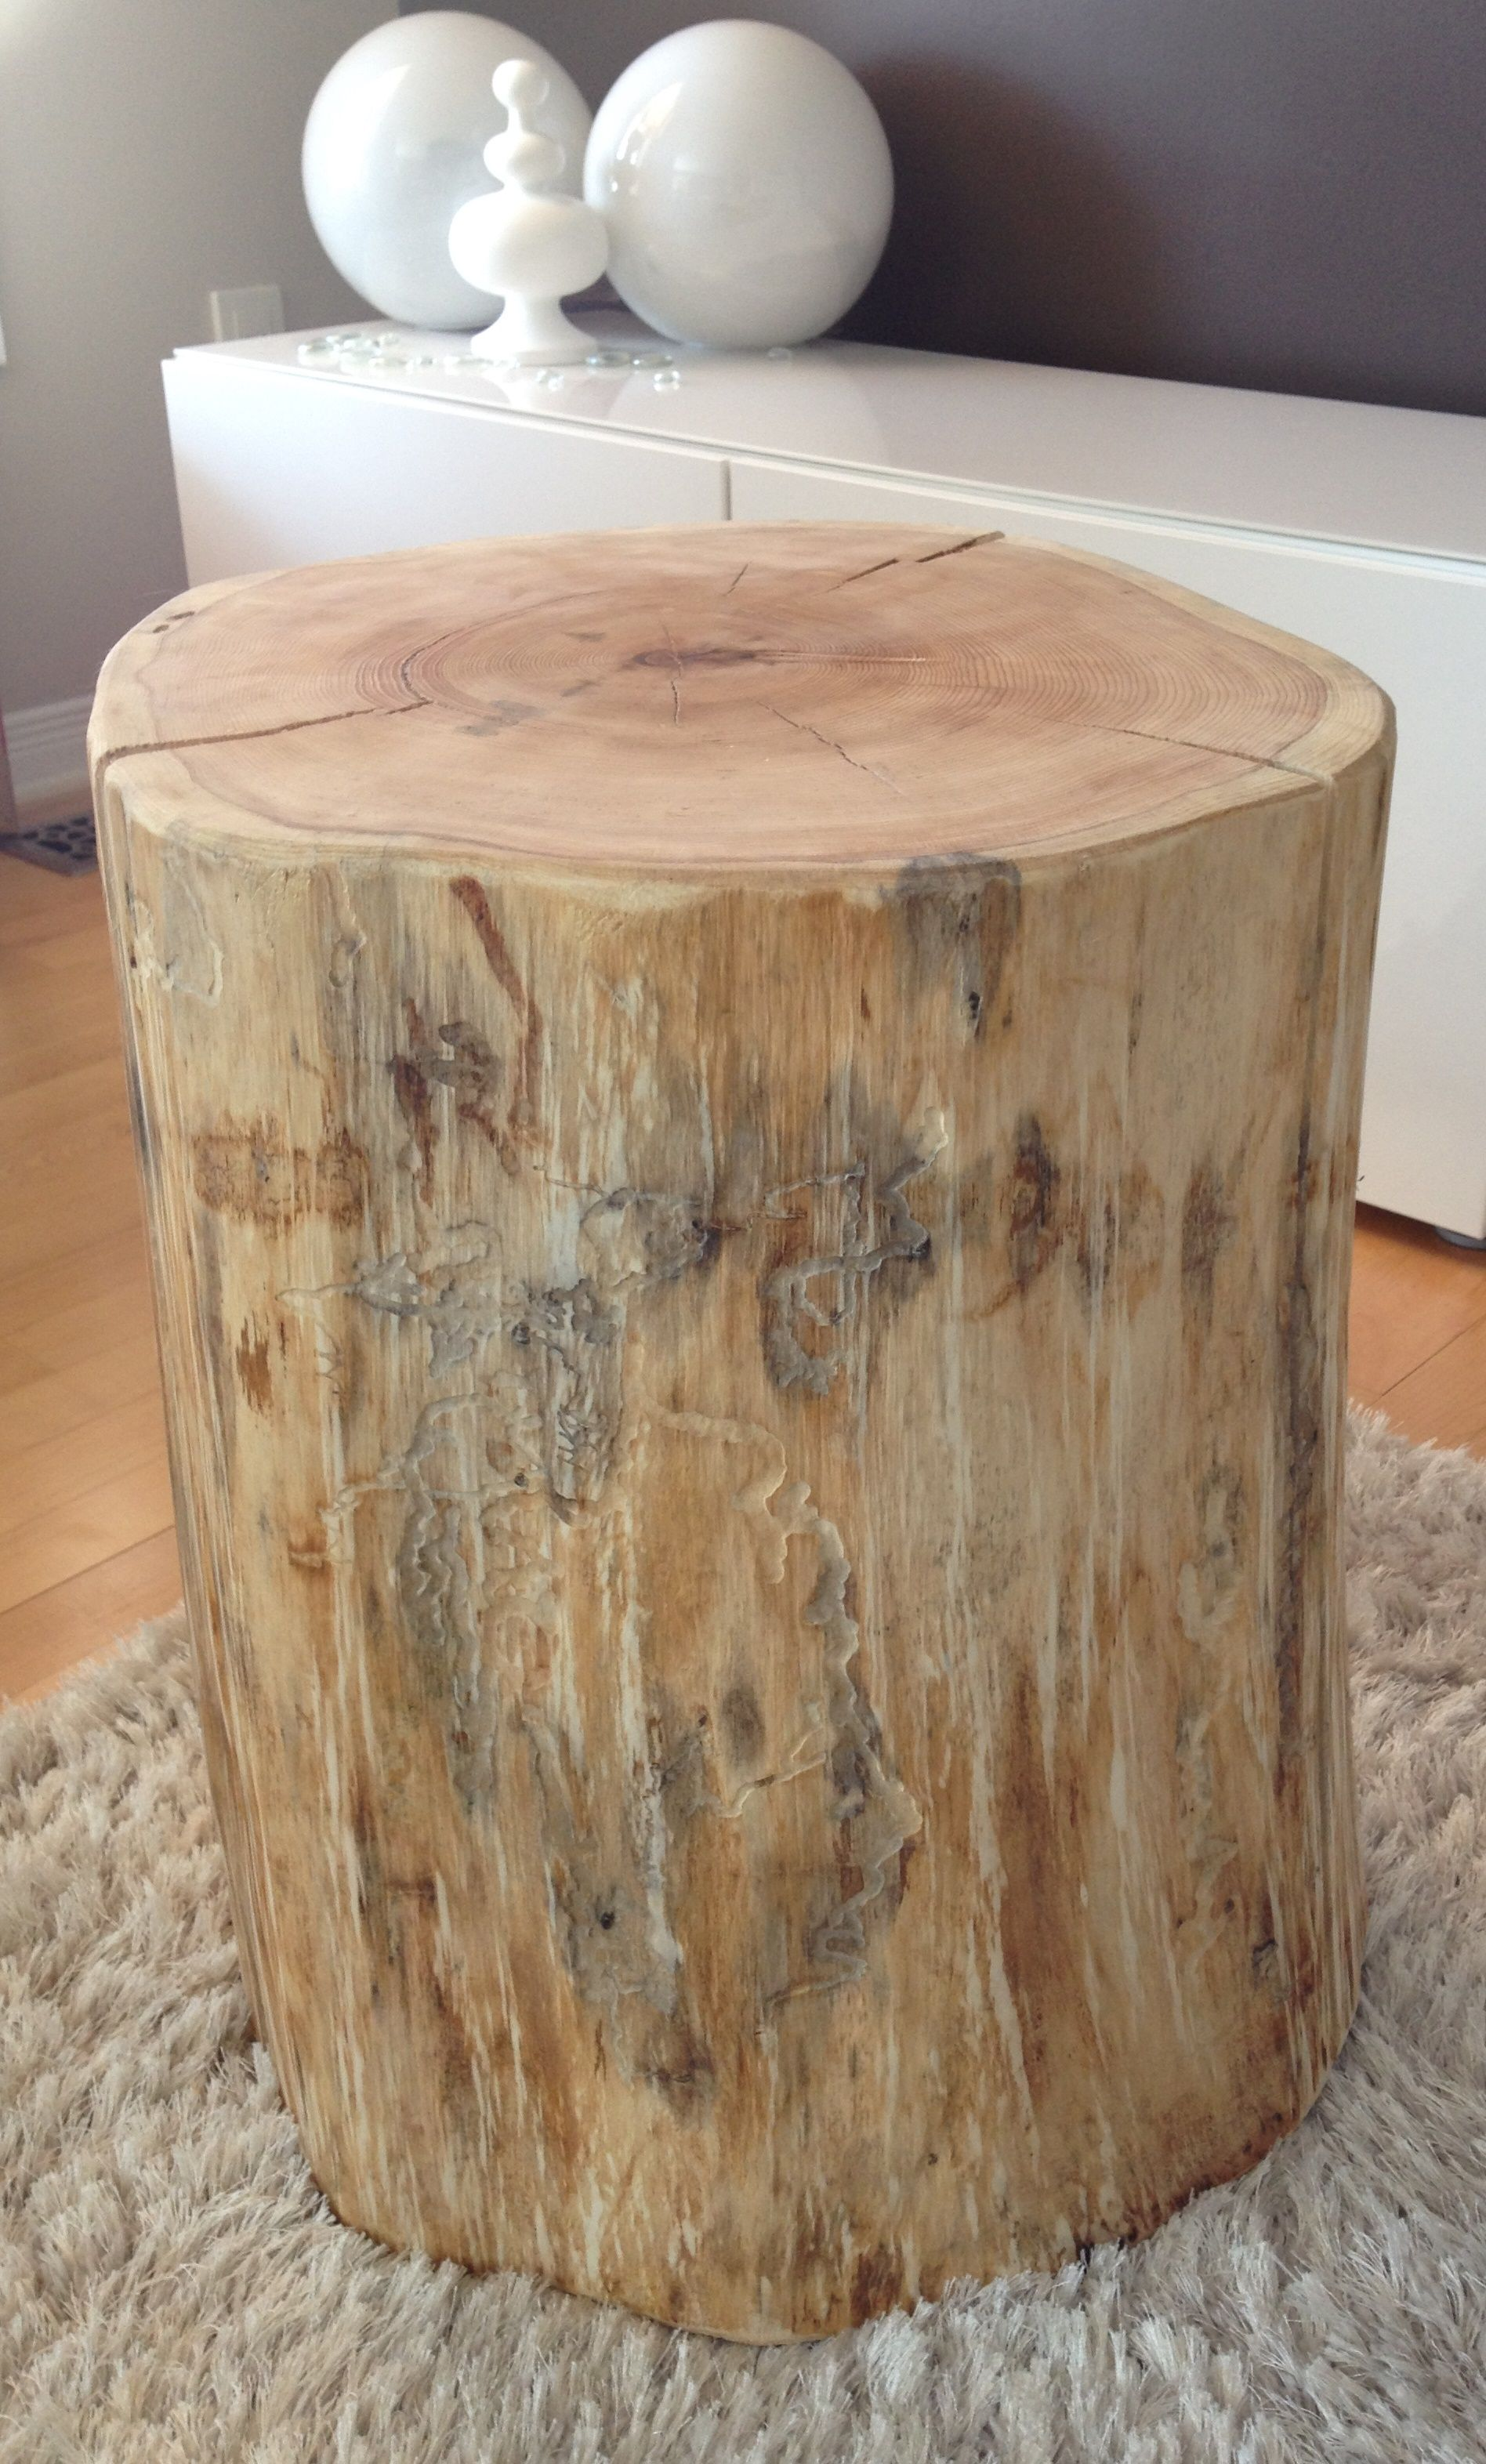 Stump Side Tables All Different Shades From White Washed Stump Tables To Walnut Stump Side Tables Serenit With Images Stump Table Wood Stump Side Table Tree Stump Table